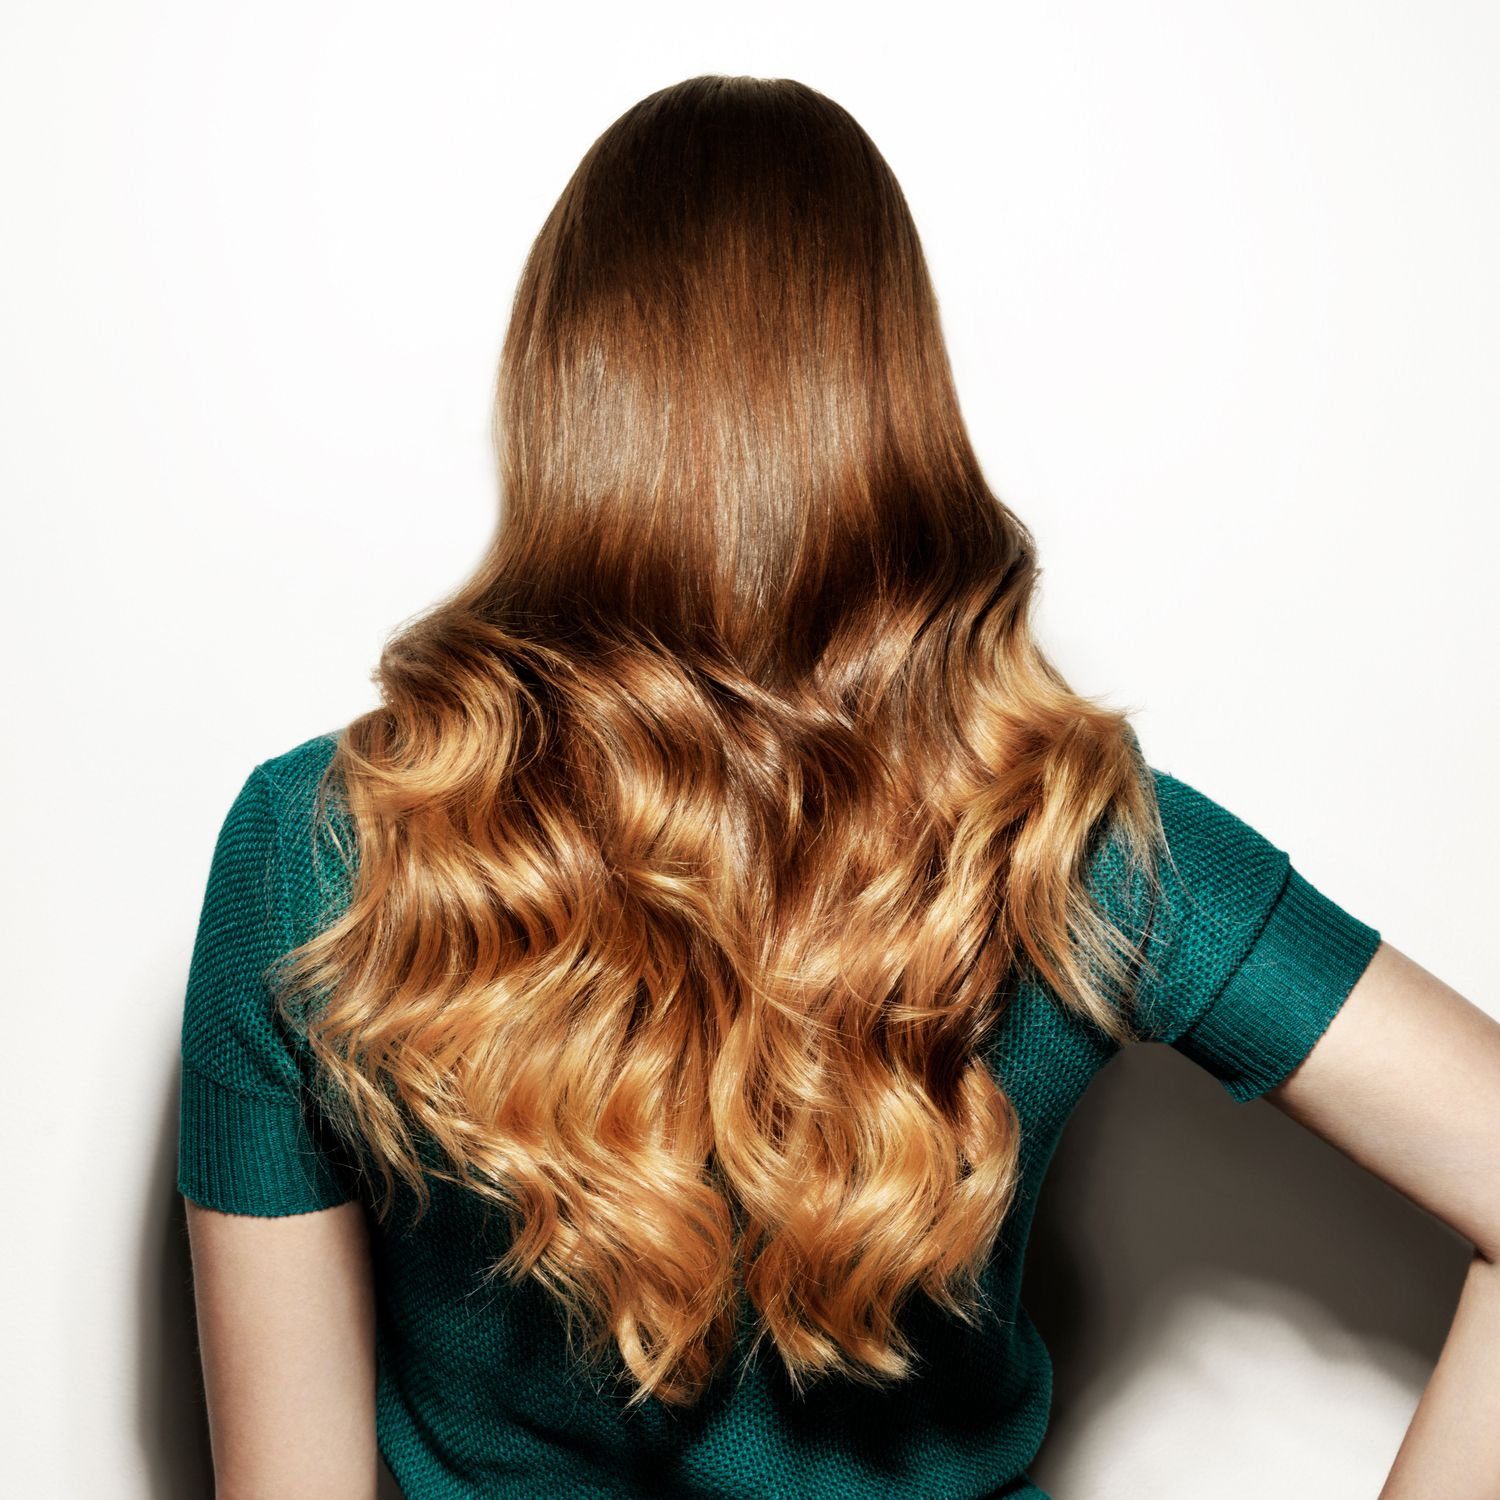 Thickening Highlights Review Aveda Hair Salon Spa Treatment